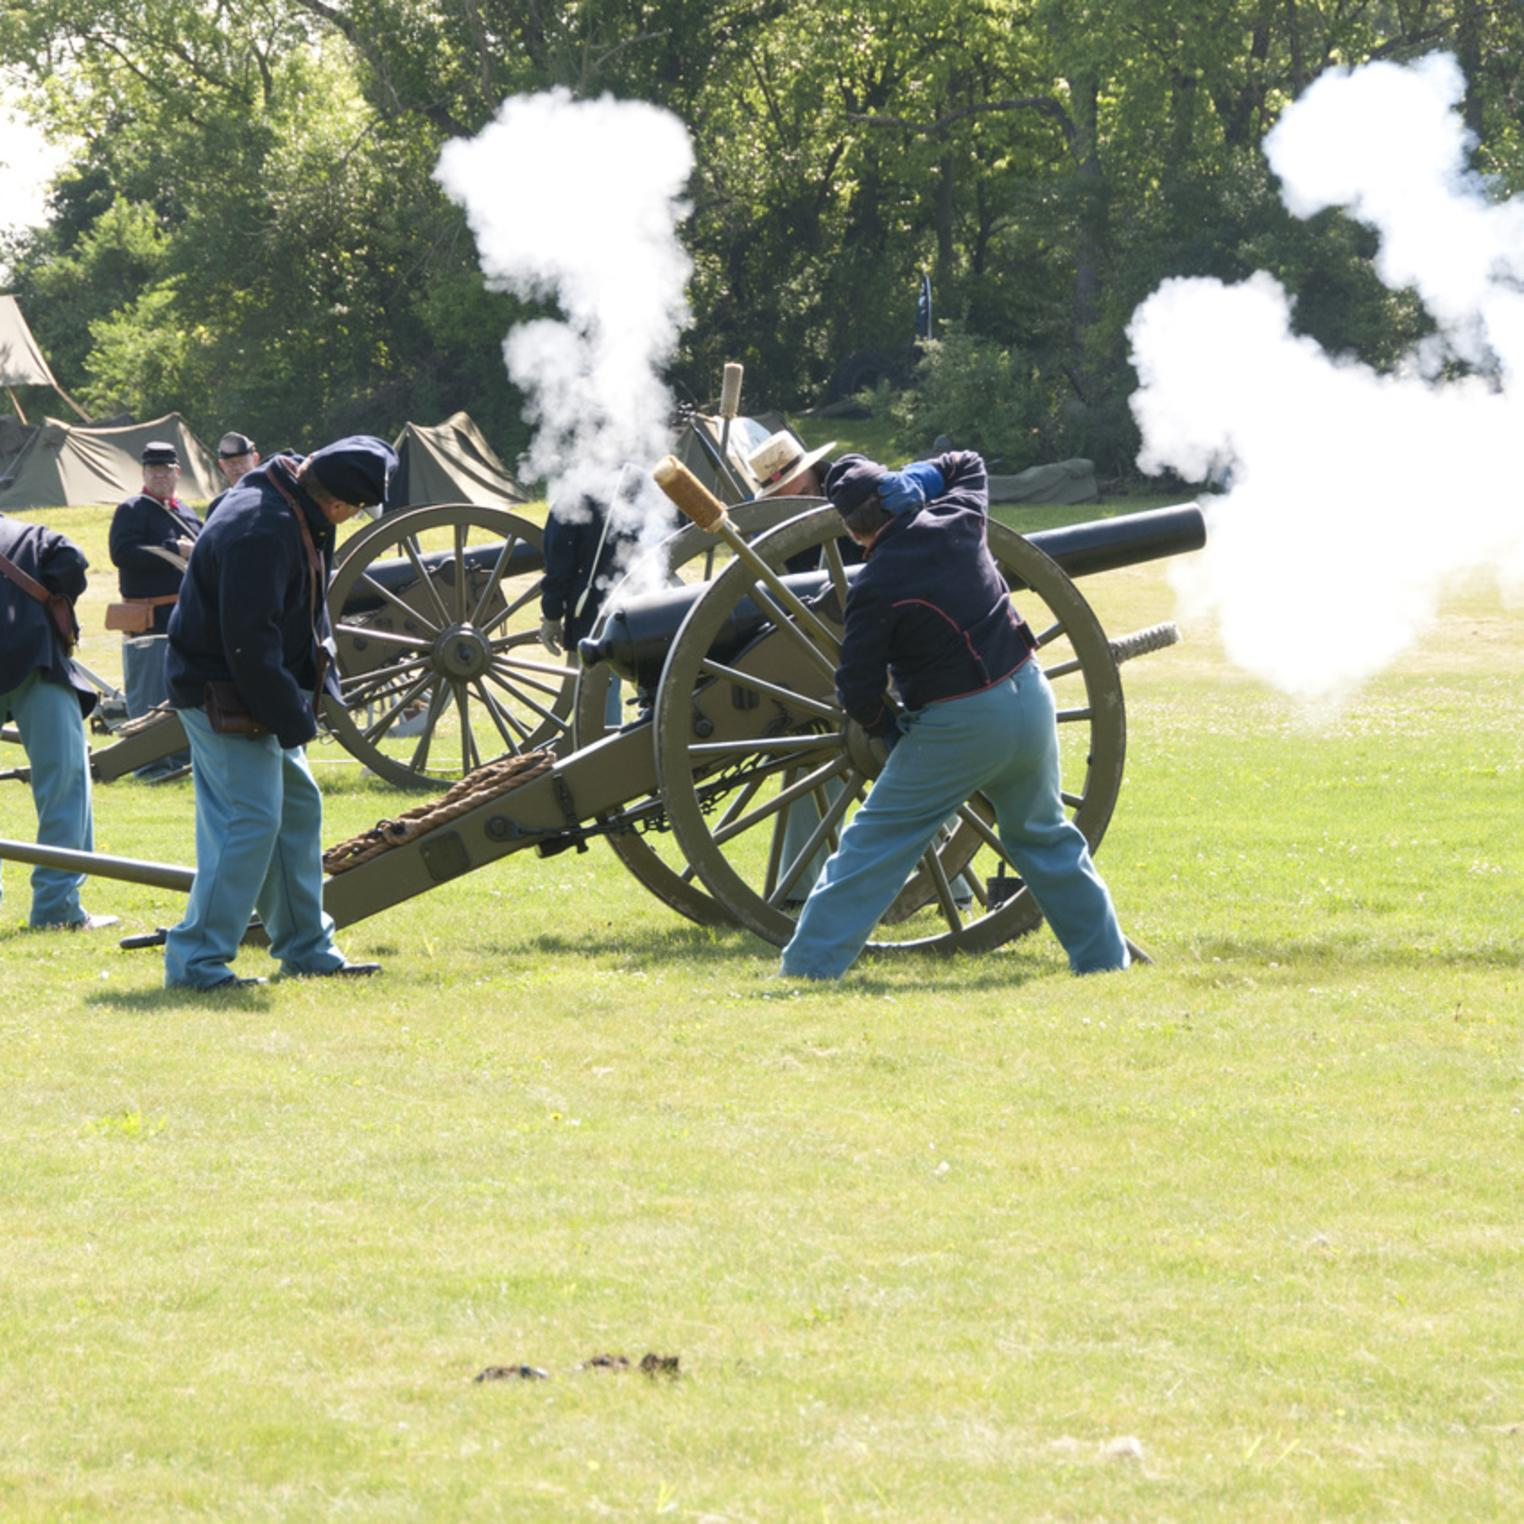 Artillery Demonstration at Army Heritage Days